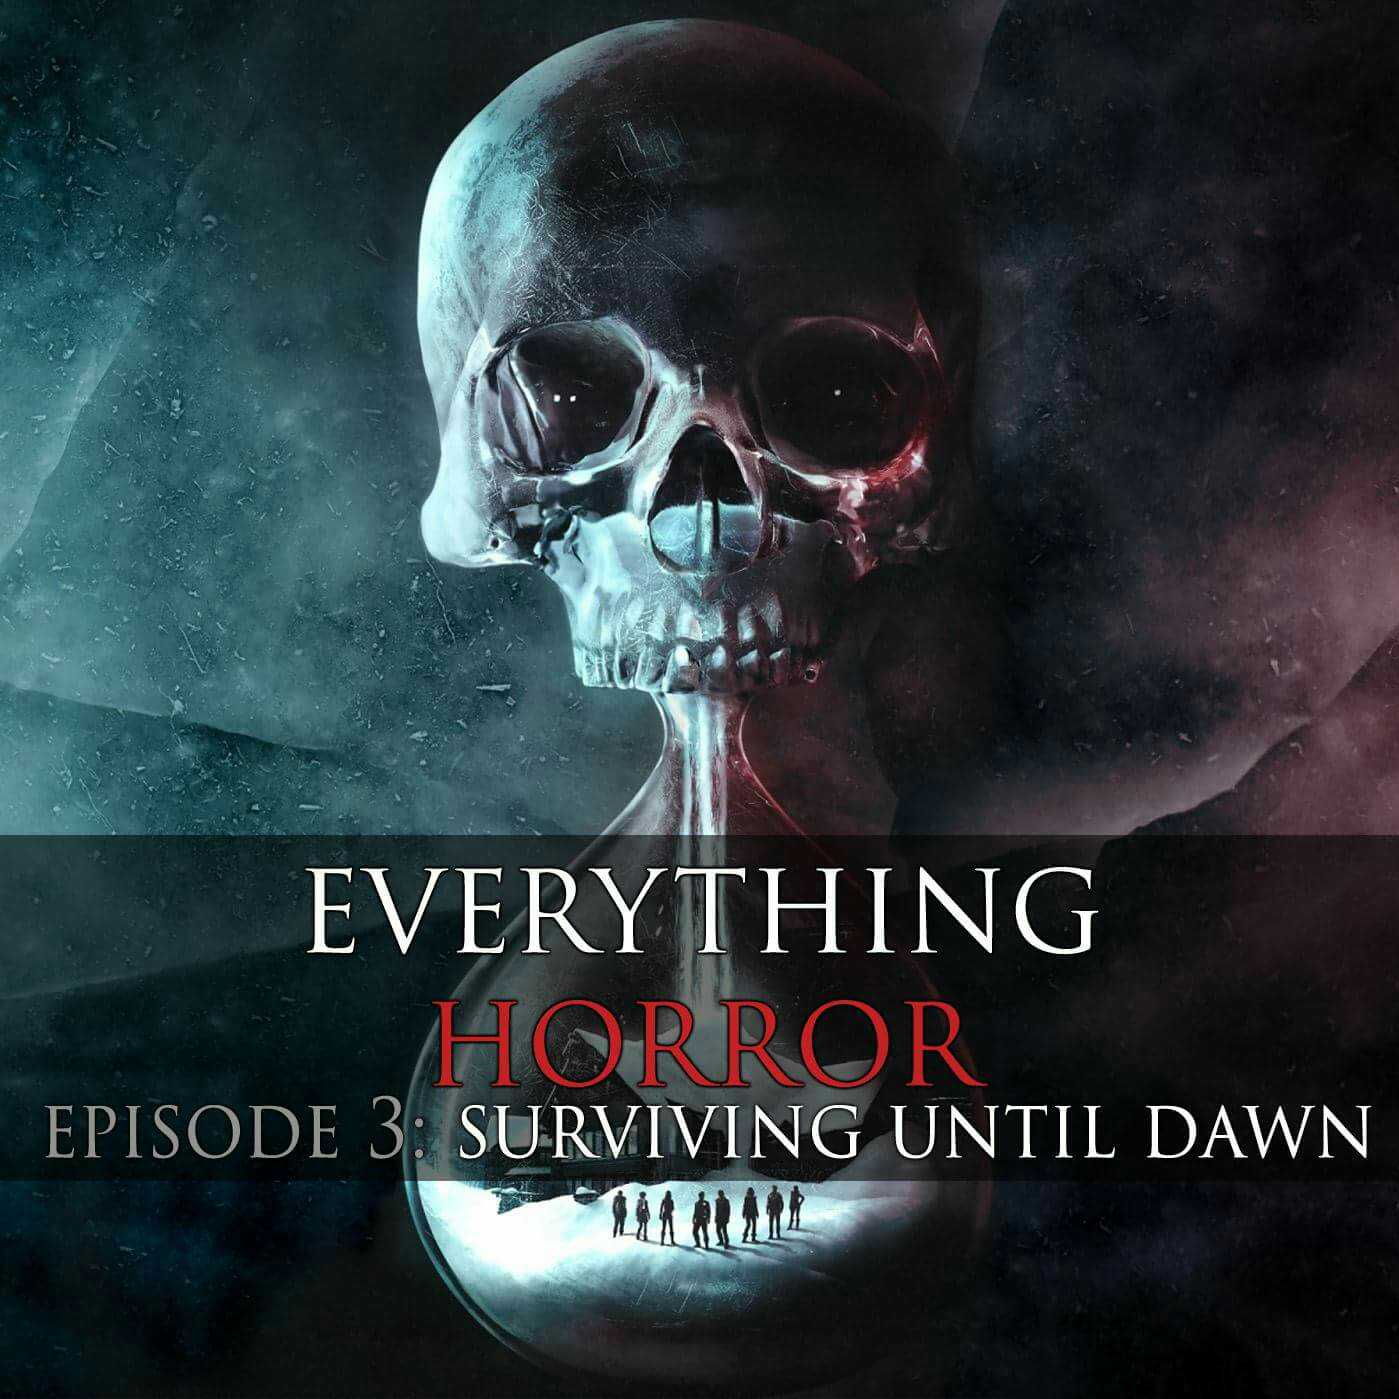 S1: Episode 3: Surviving Until Dawn